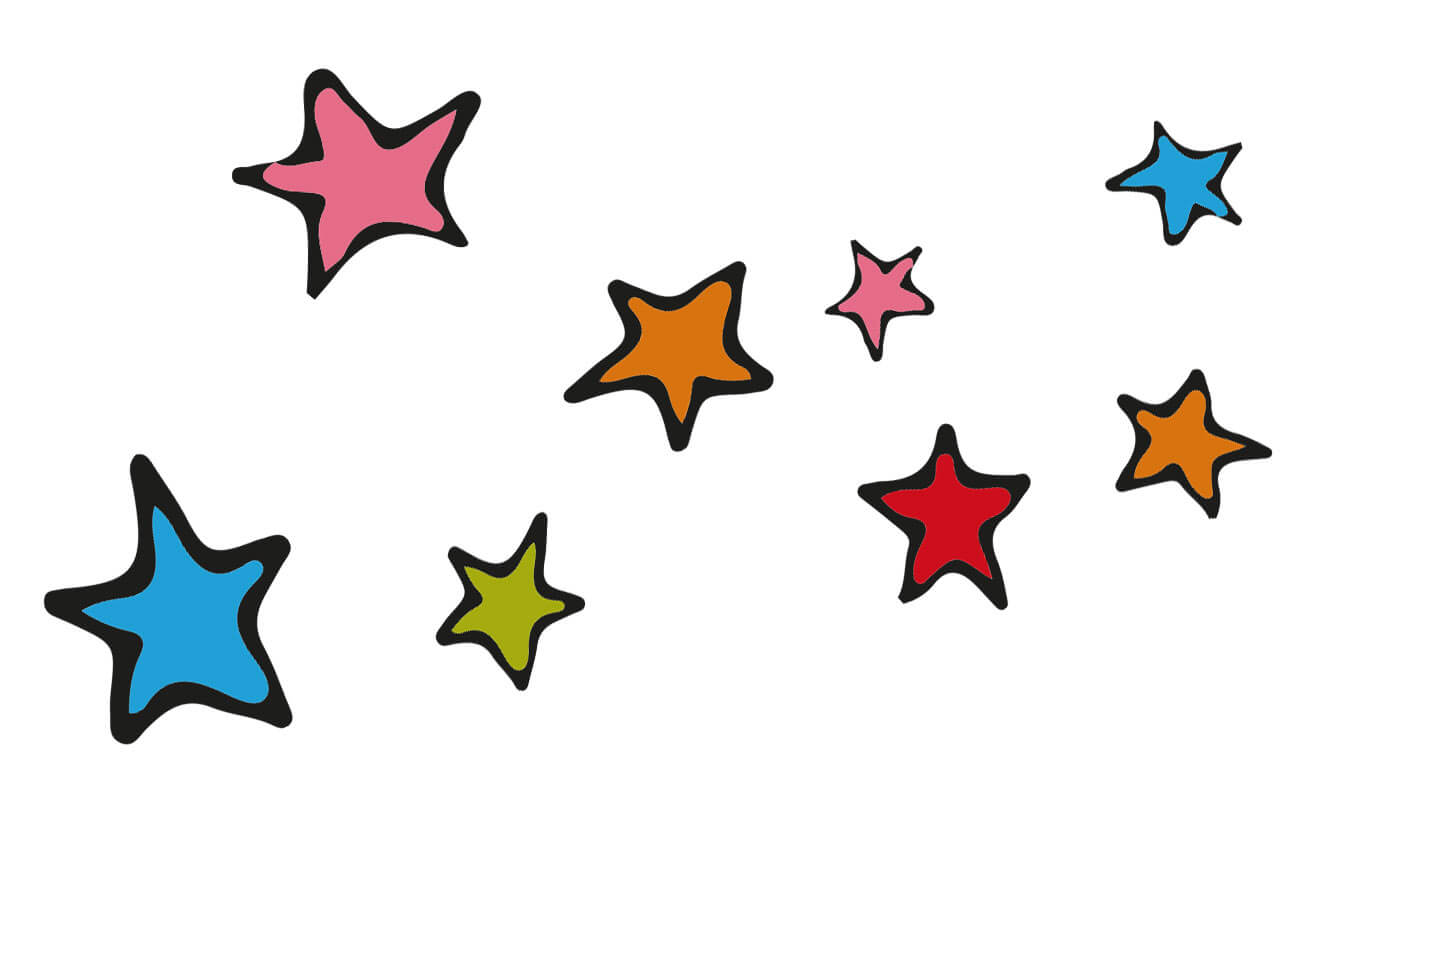 Colourful illustrated stars